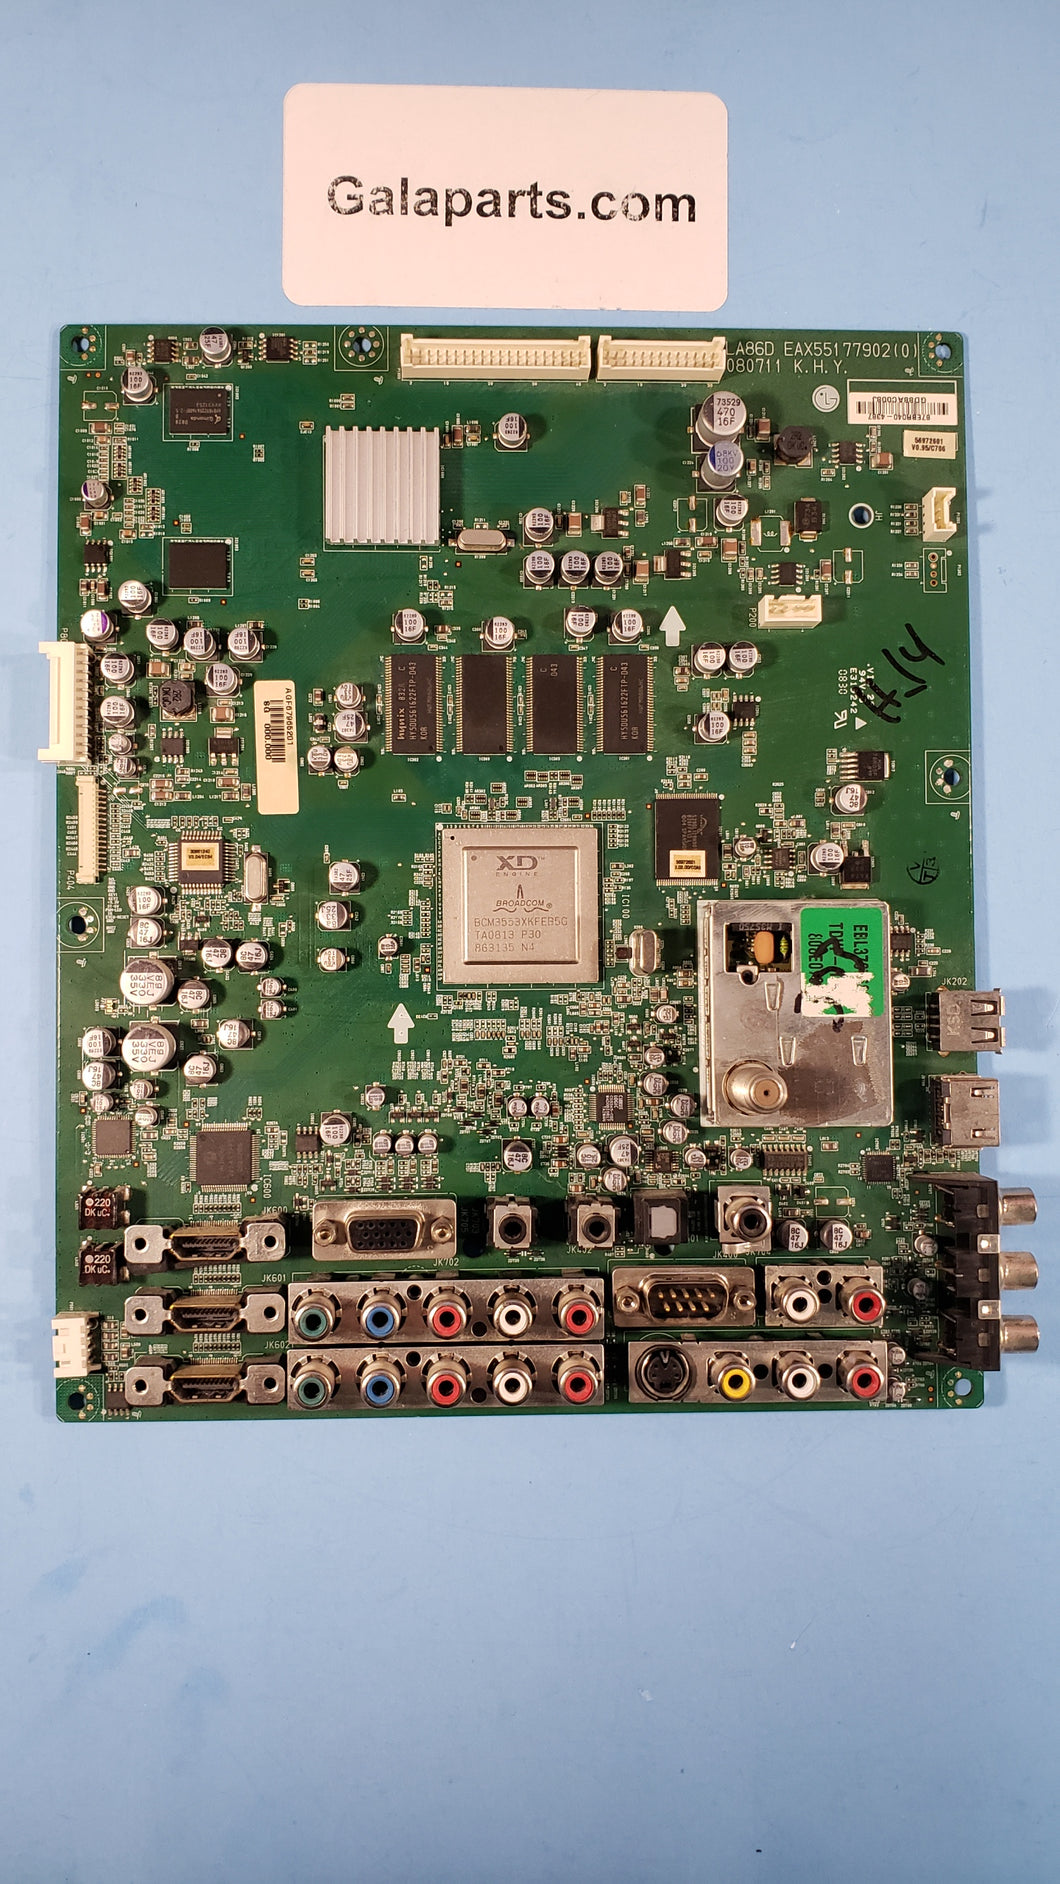 AGF67965201 EAX55177902 Main Board for LG 47LG70-UG - Electronics TV Parts - GalaParts.com